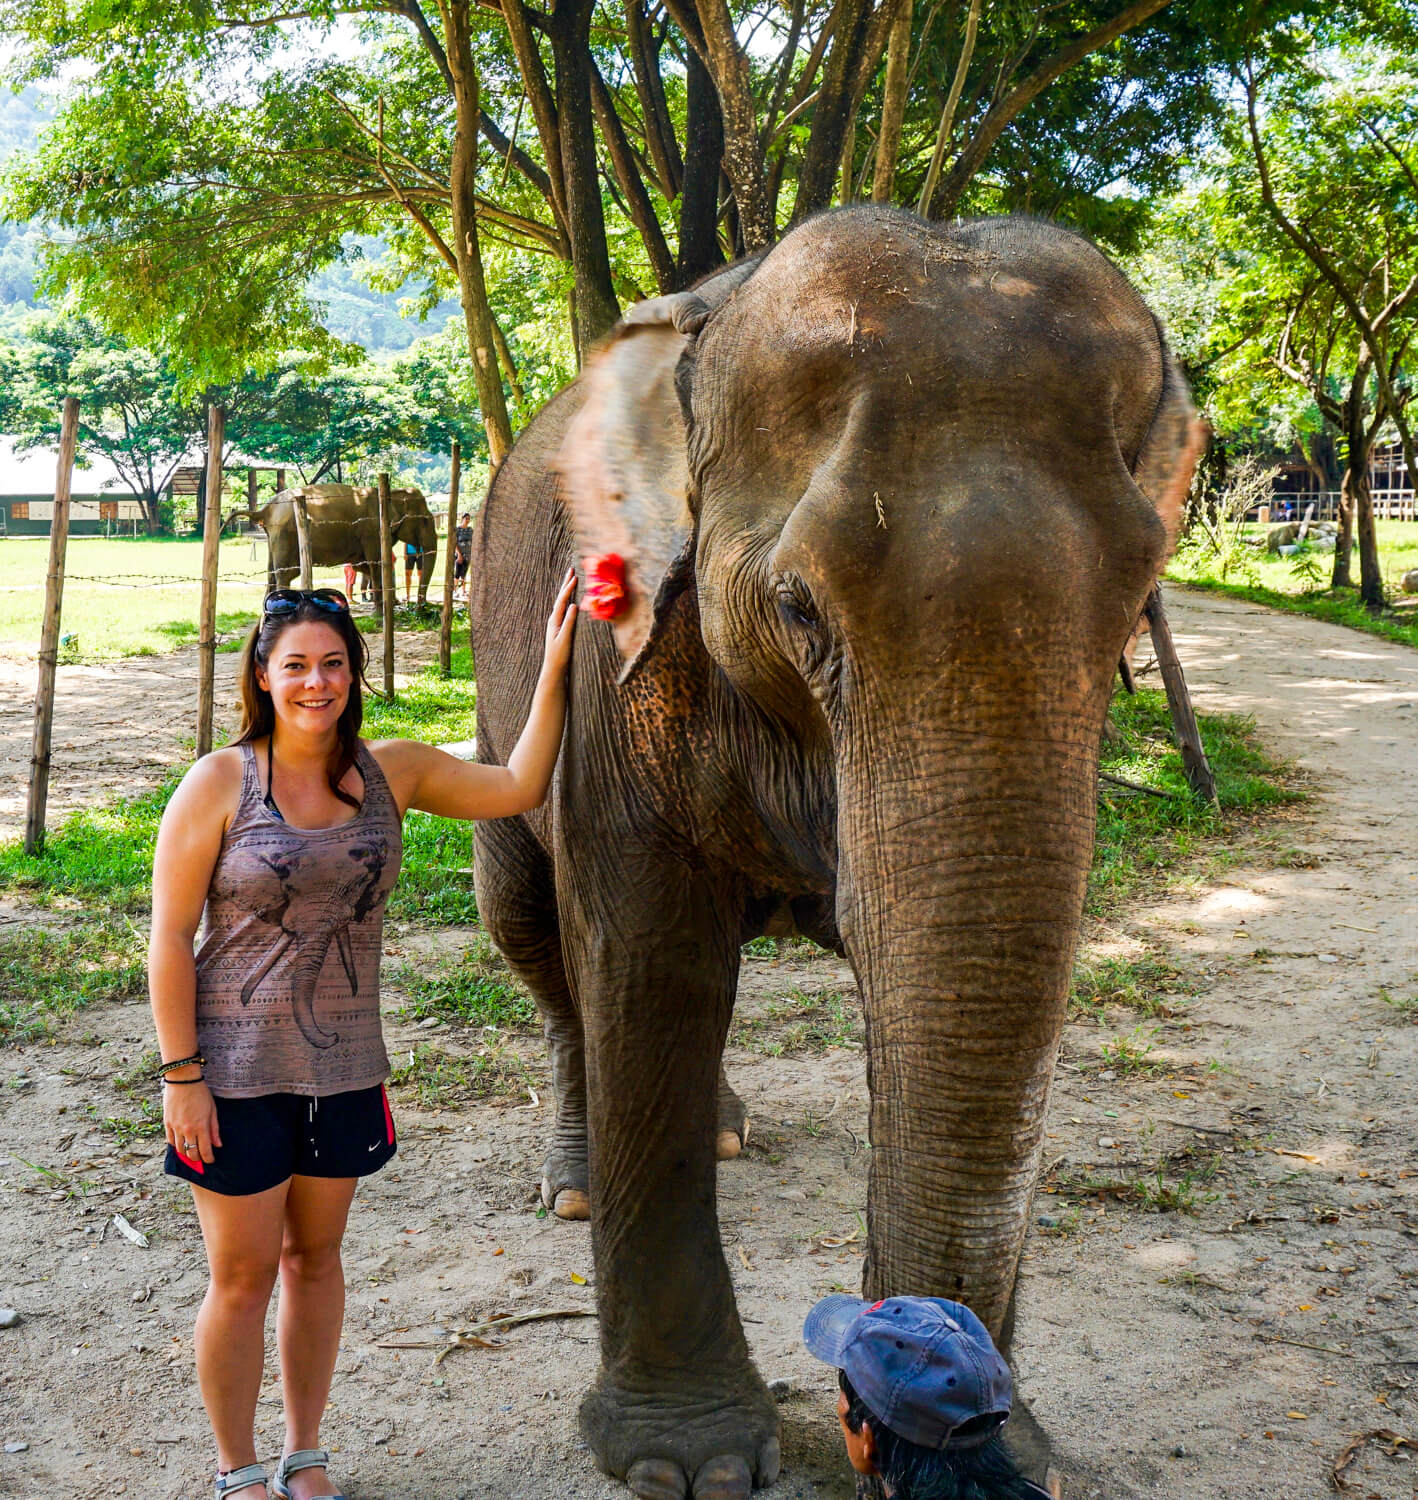 Jess taking a picture with an elephant